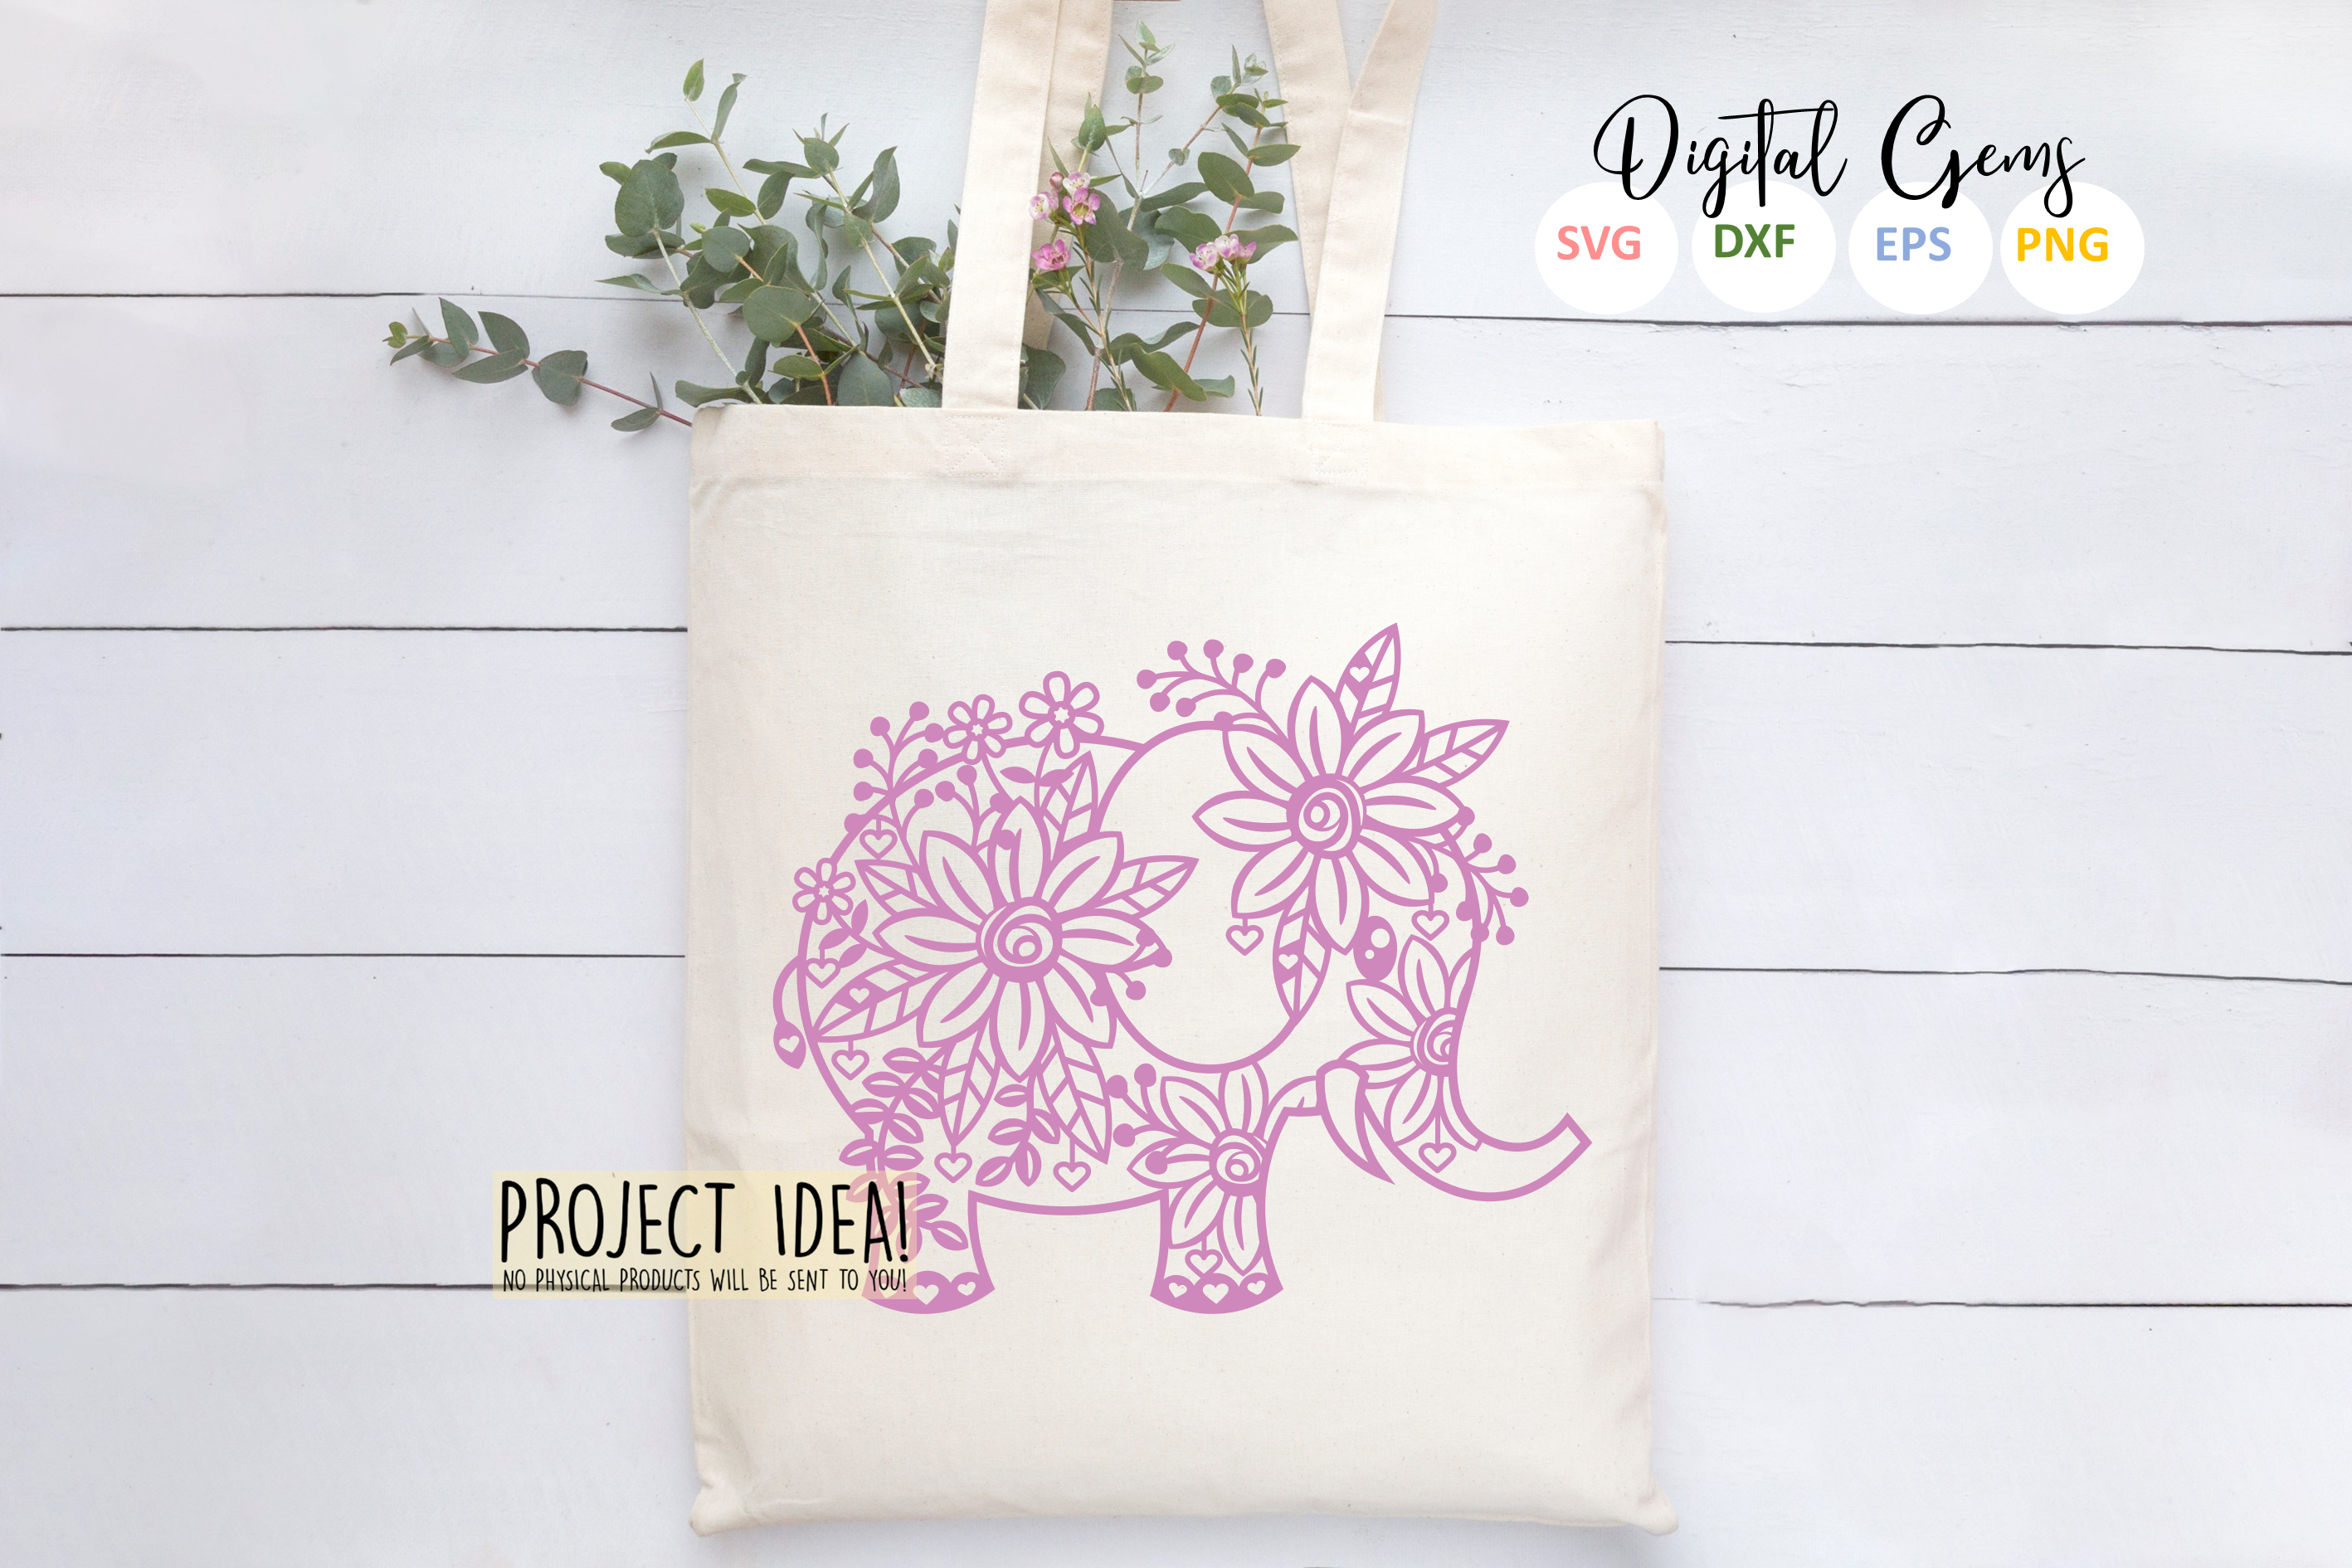 Elephant paper cut design SVG / DXF / EPS / PNG files example image 4